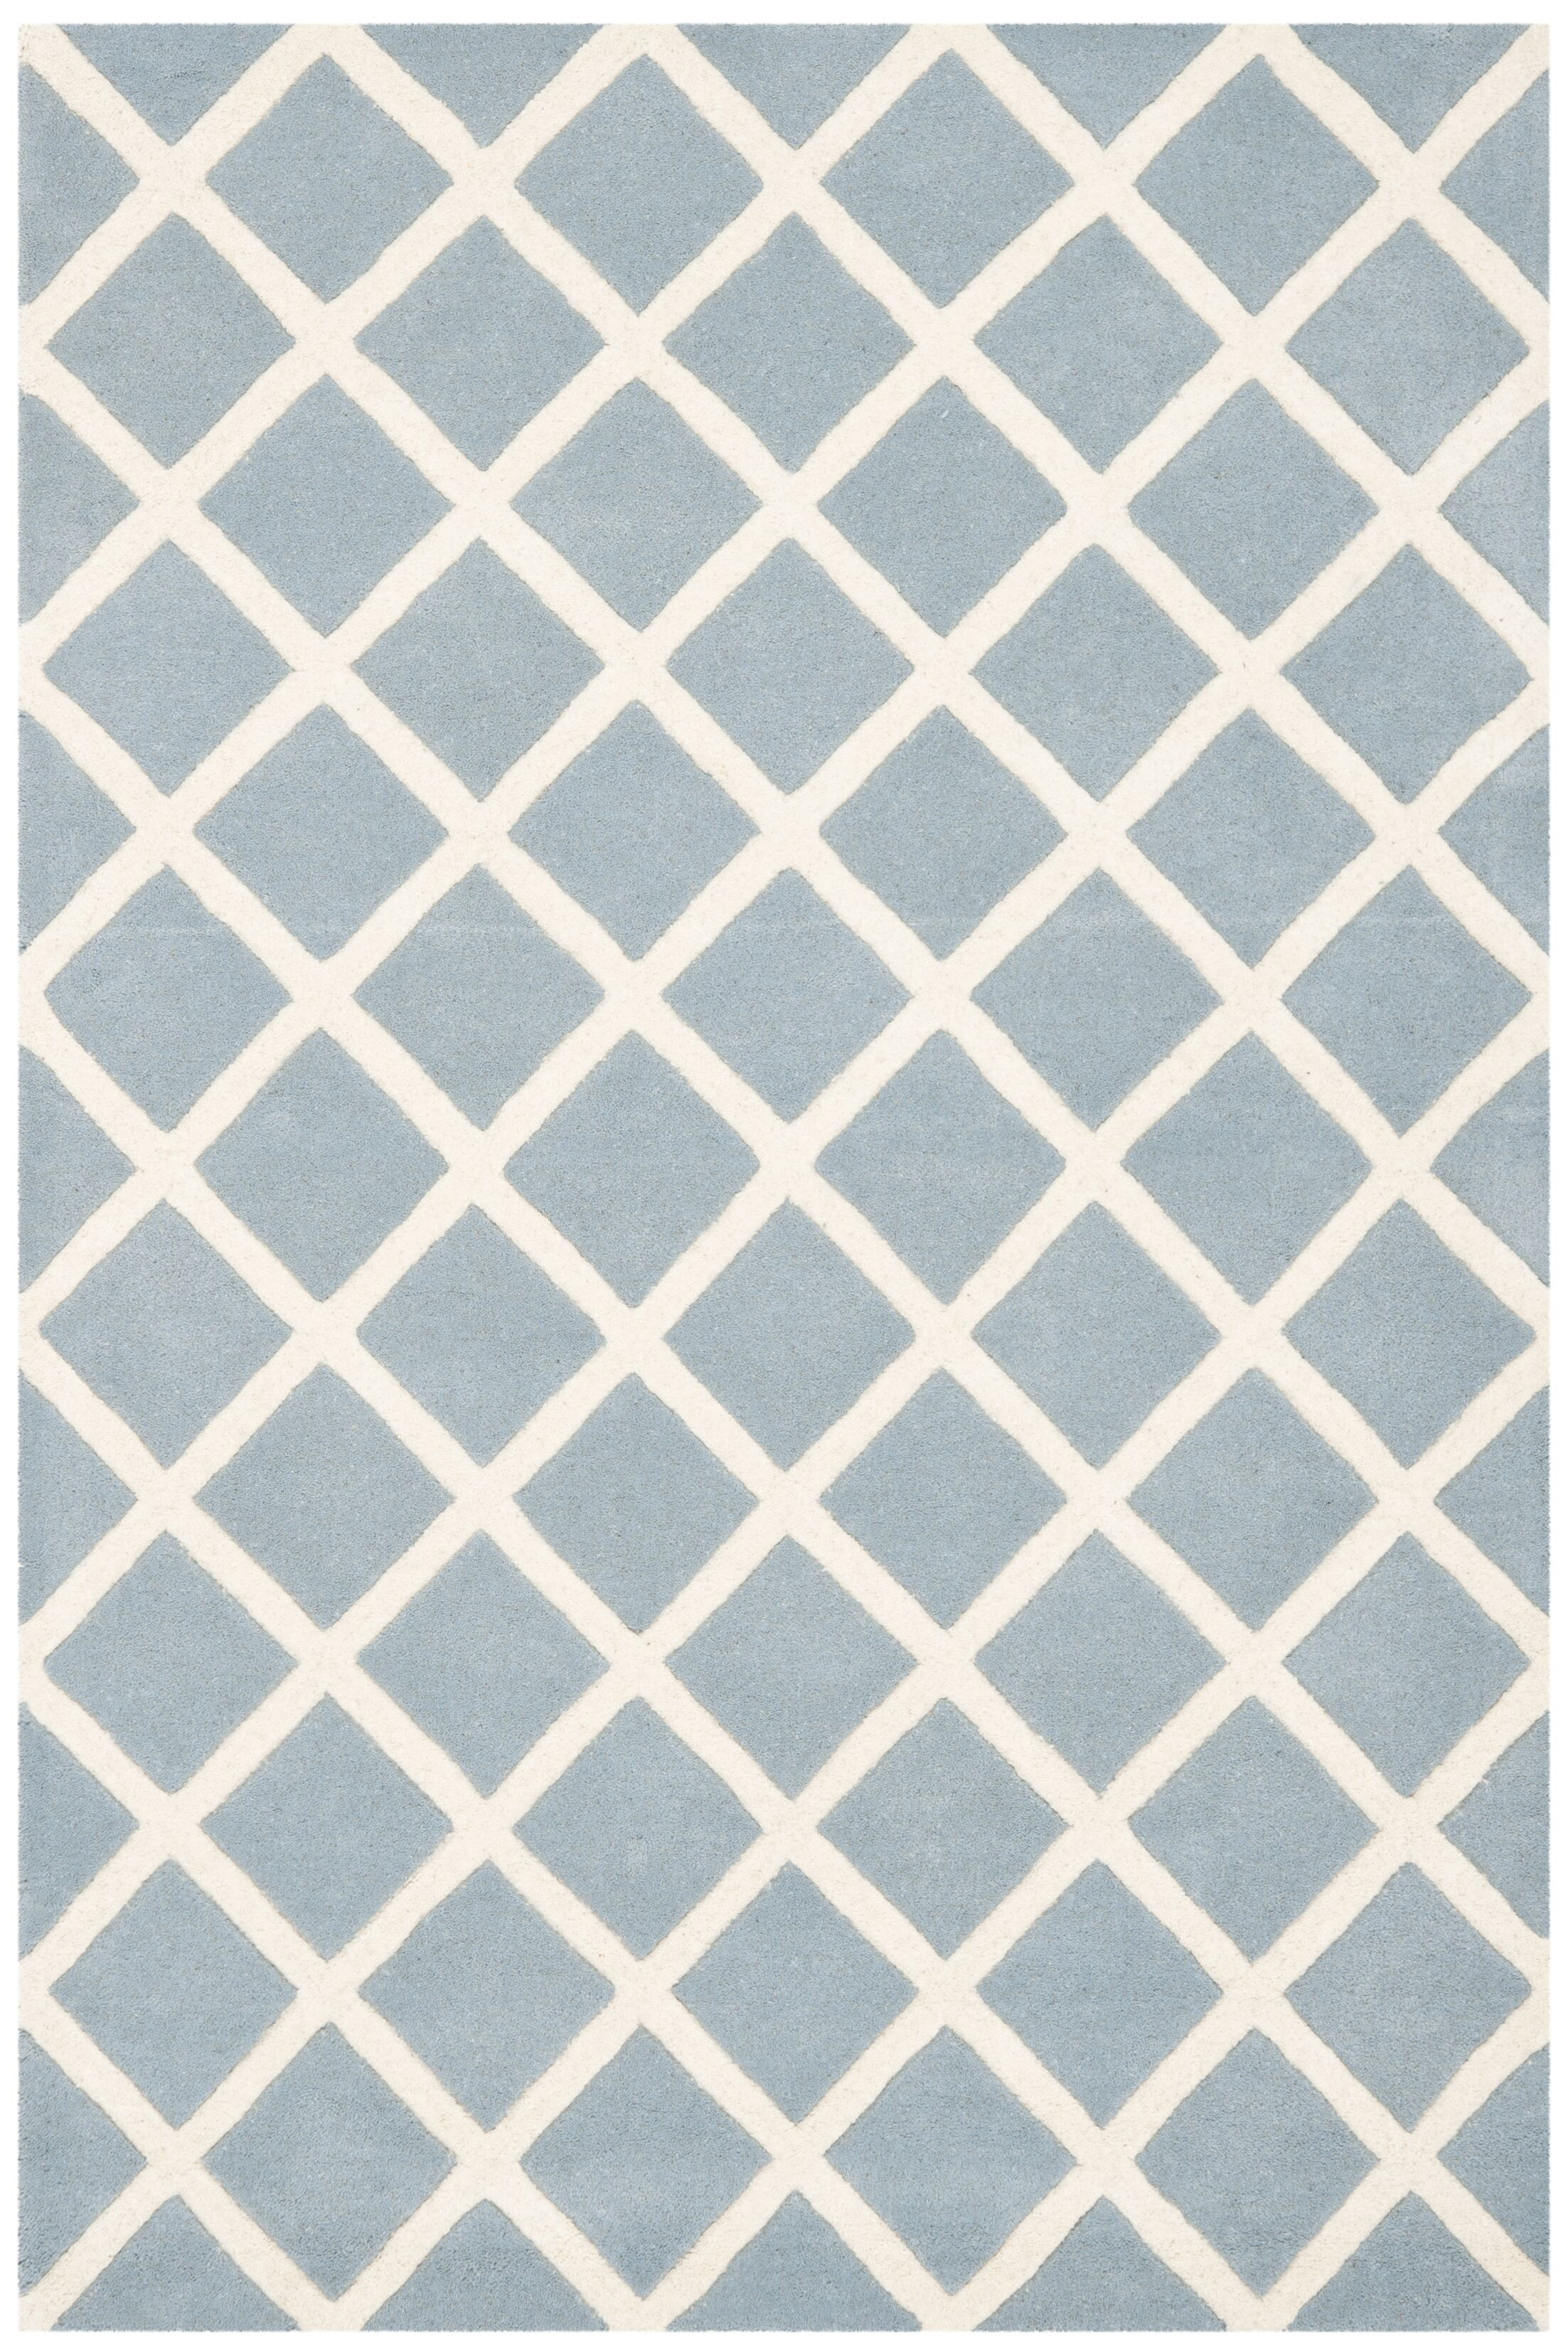 Wilkin Hand-Tufted Light Blue/Ivory Area Rug Rug Size: Rectangle 3' x 5'